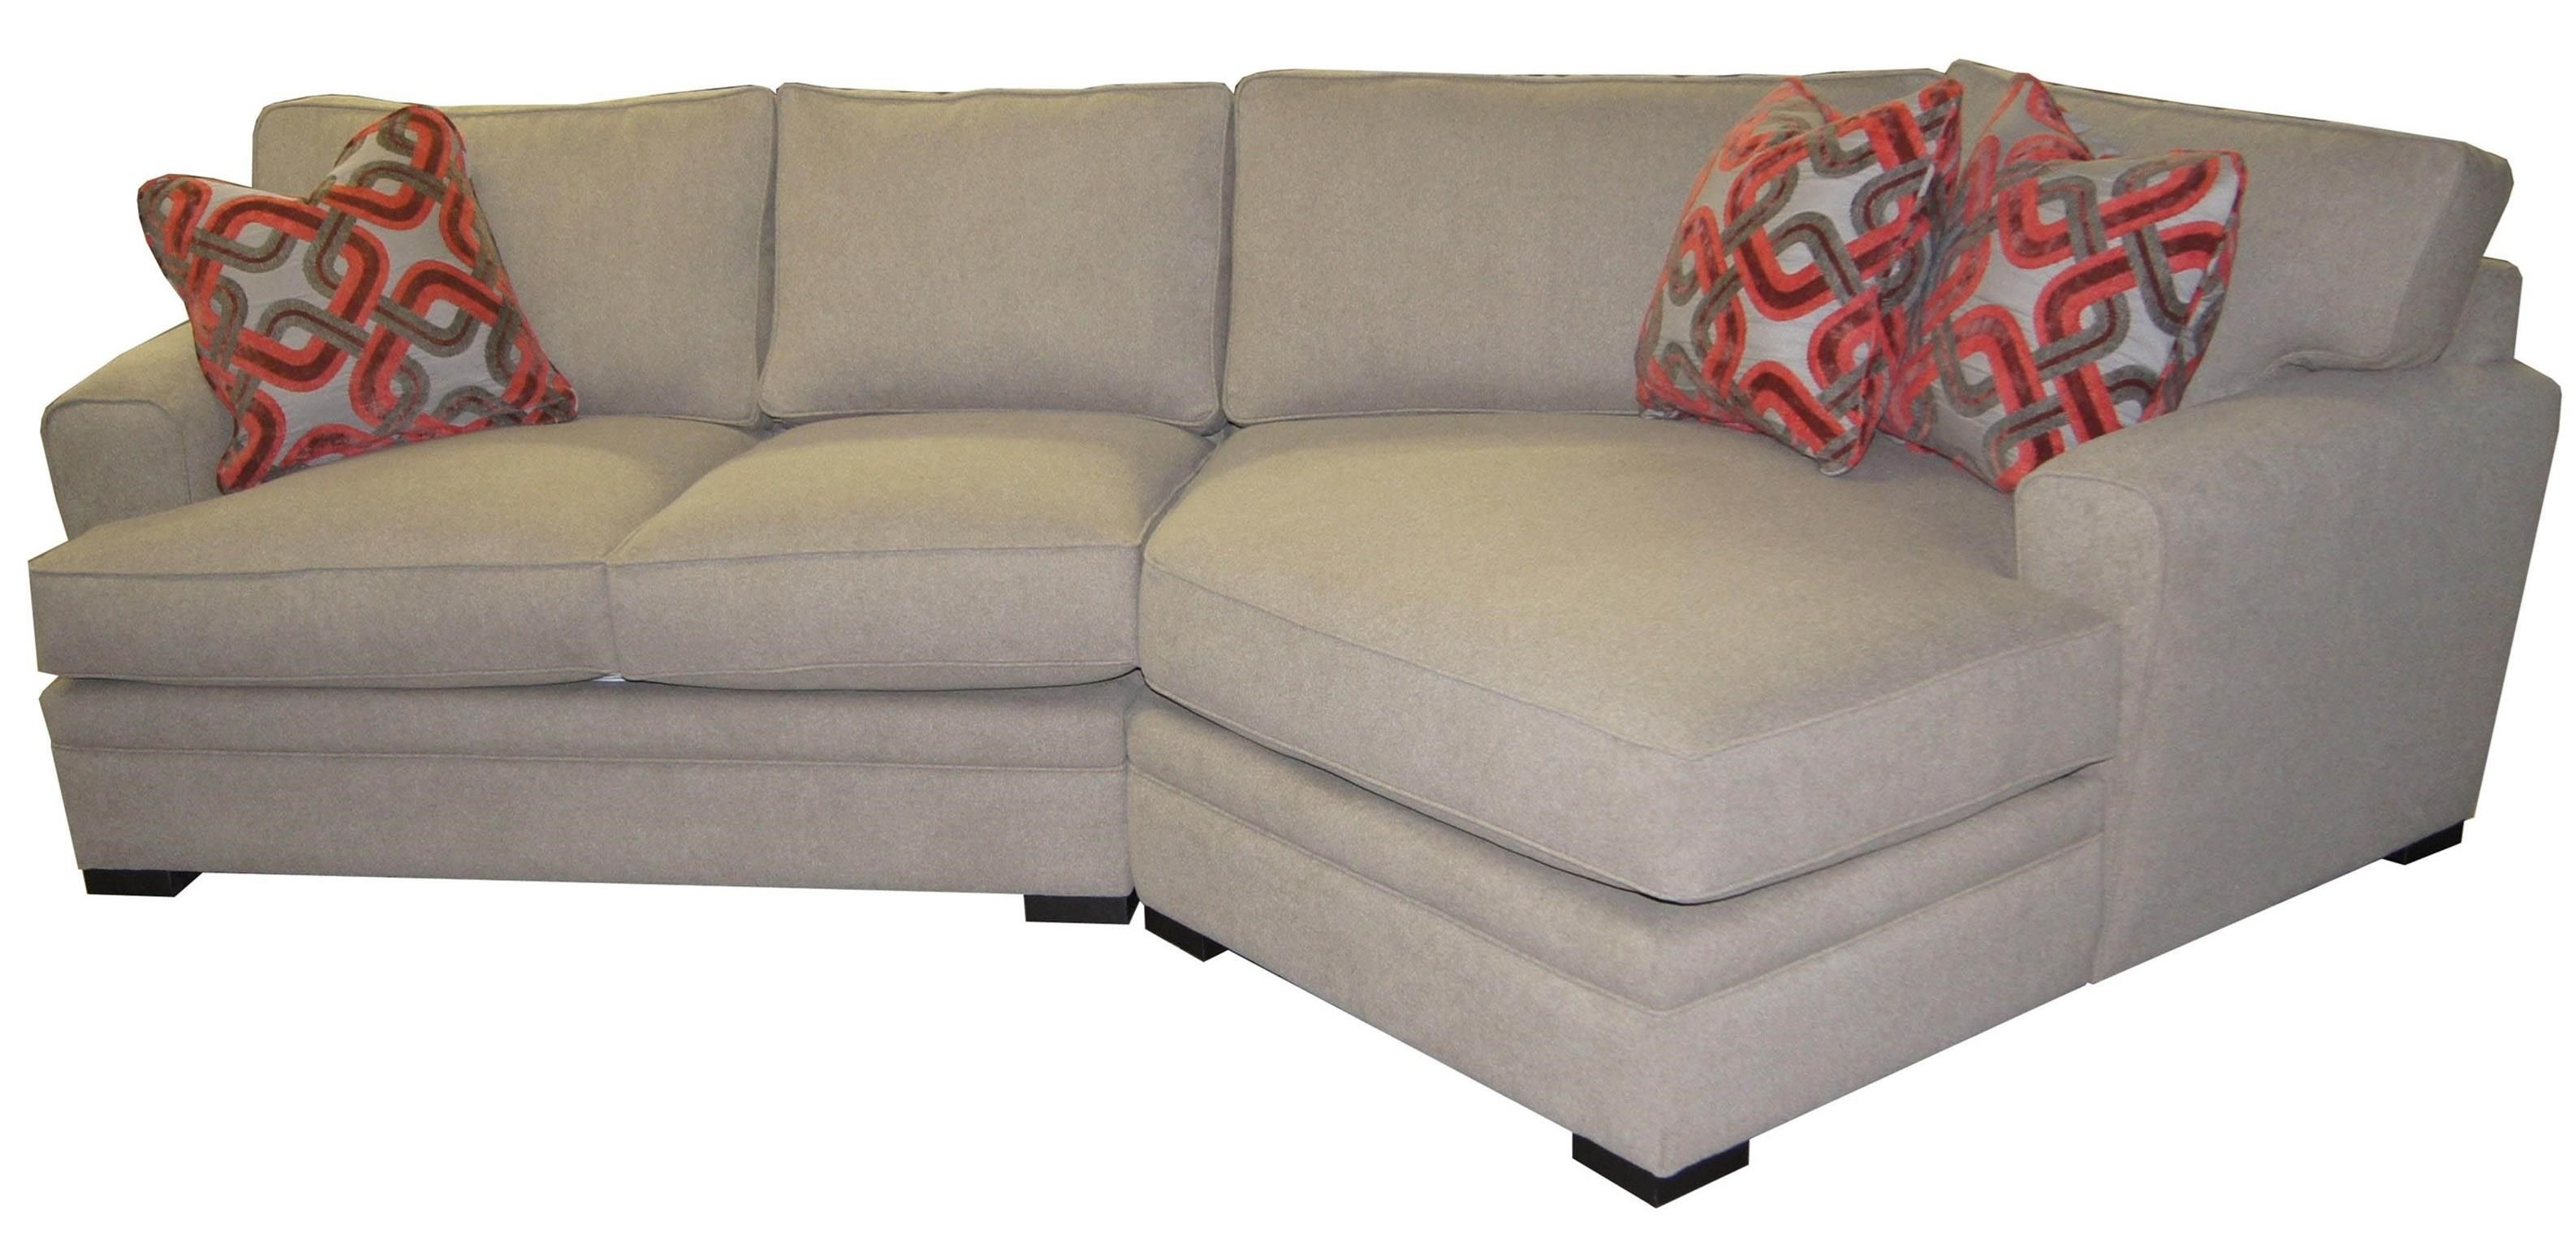 Jonathan Louis Aries Casual Sectional Sofa With Rolled Arms   John V  Schultz Furniture   Sofa